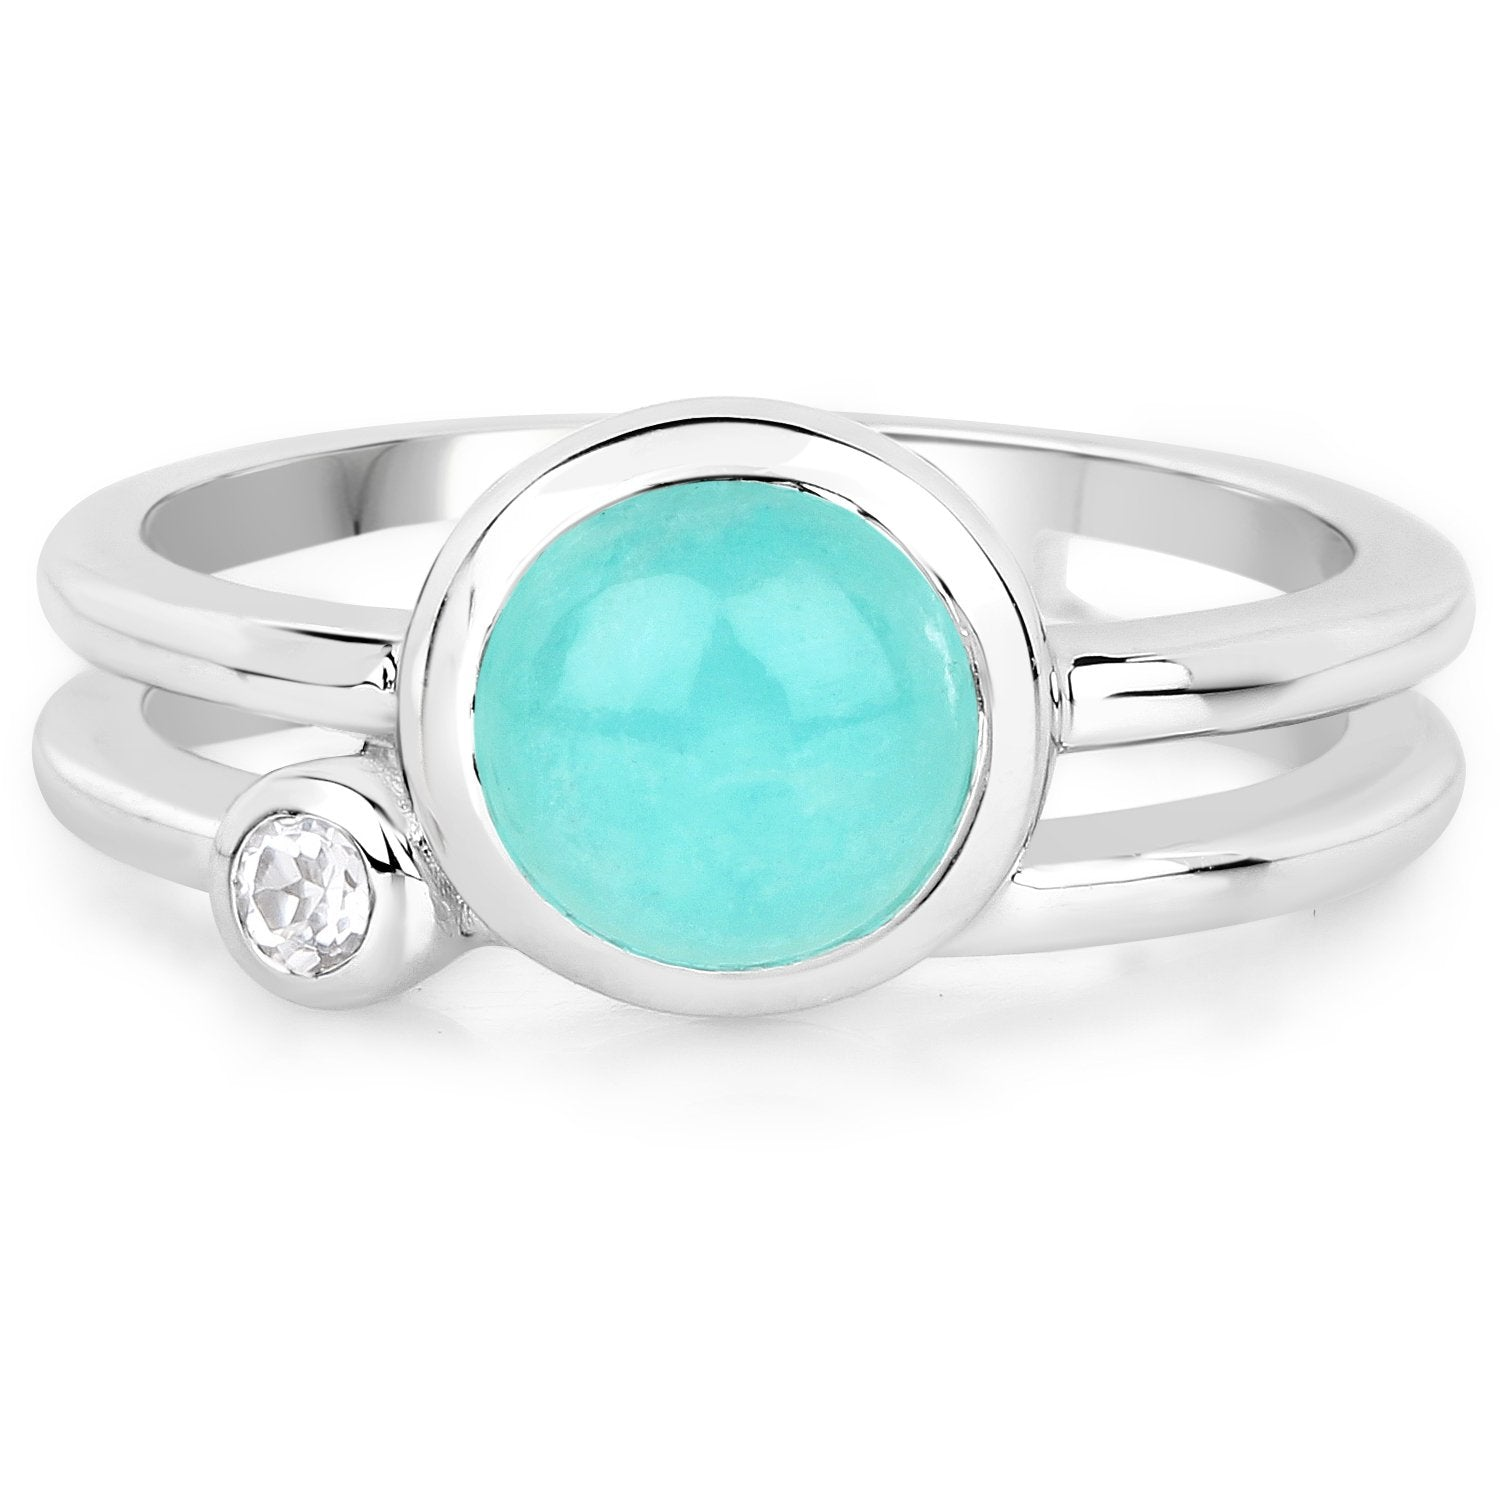 LoveHuang 1.34 Carats Genuine Amazonite and White Topaz Ring Solid .925 Sterling Silver With Rhodium Plating